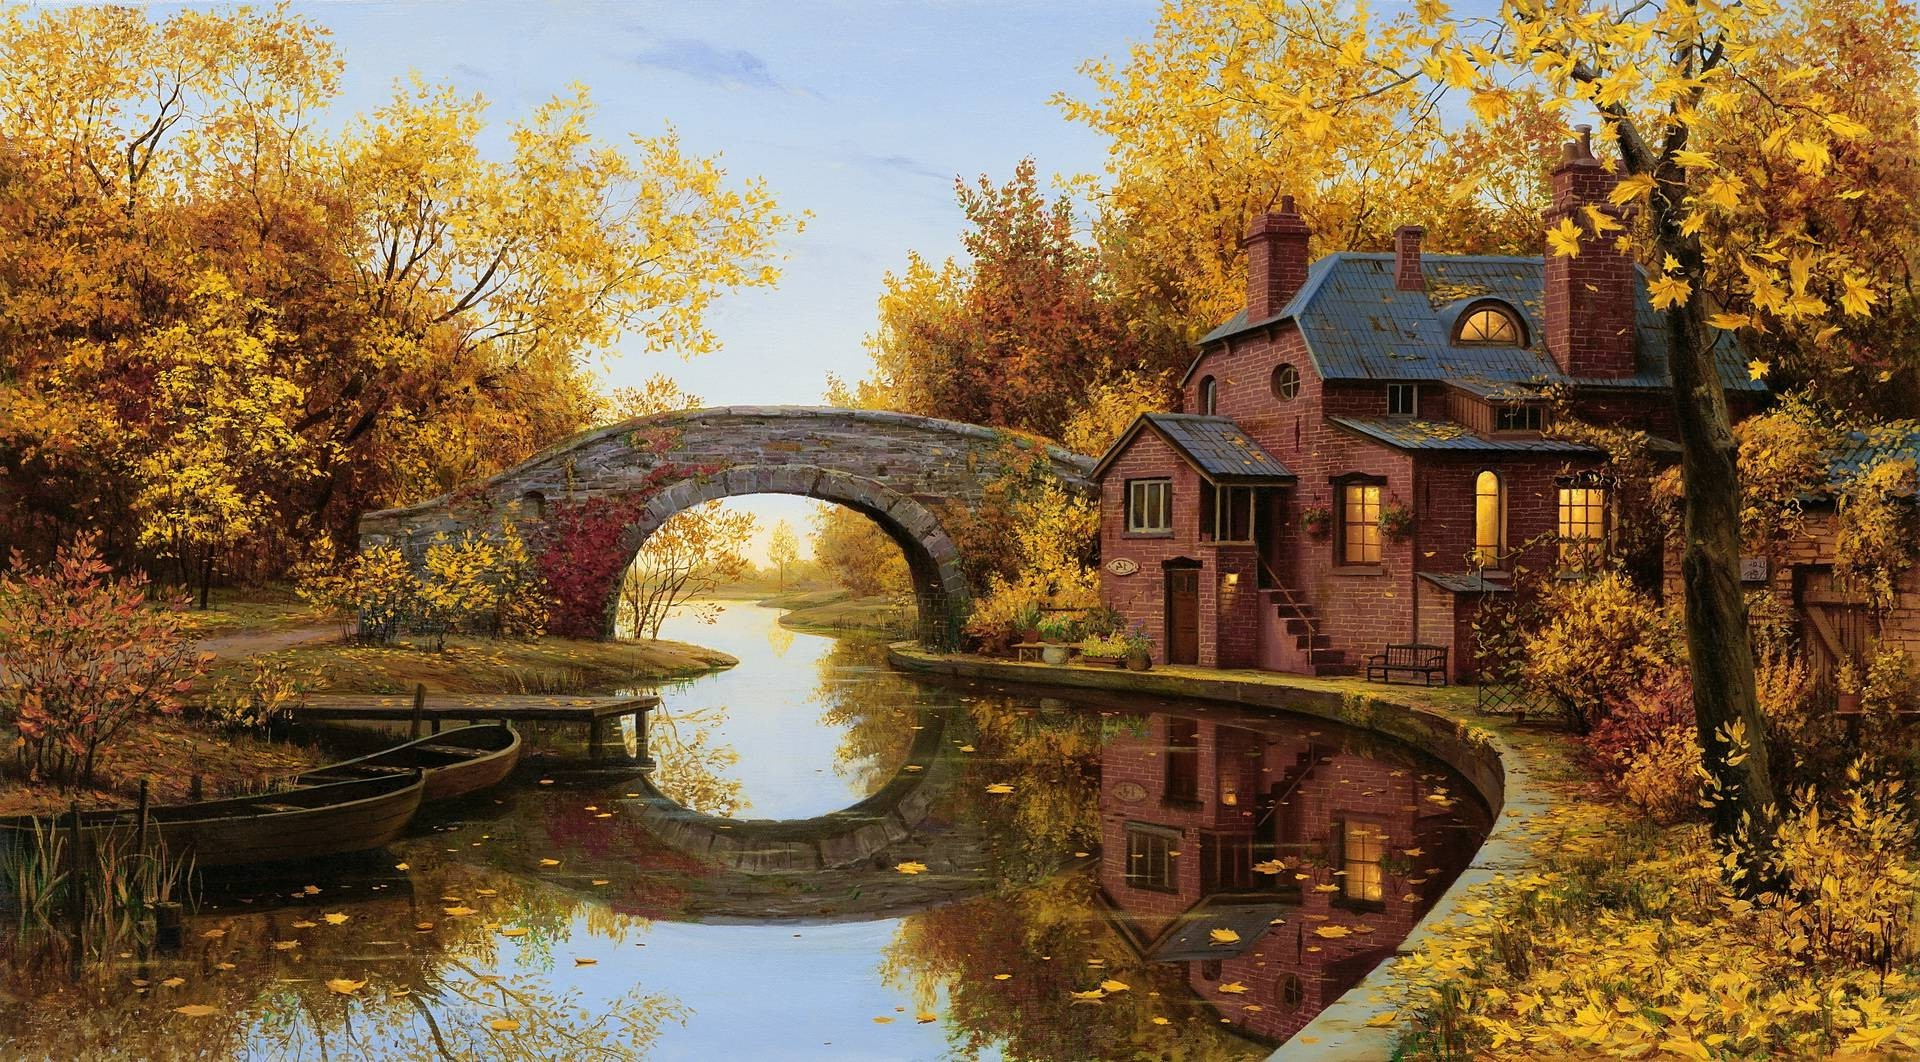 Full Screen Desktop Fall Leaves Wallpaper Reflection Bridge Arch River House Trees Boat Fall